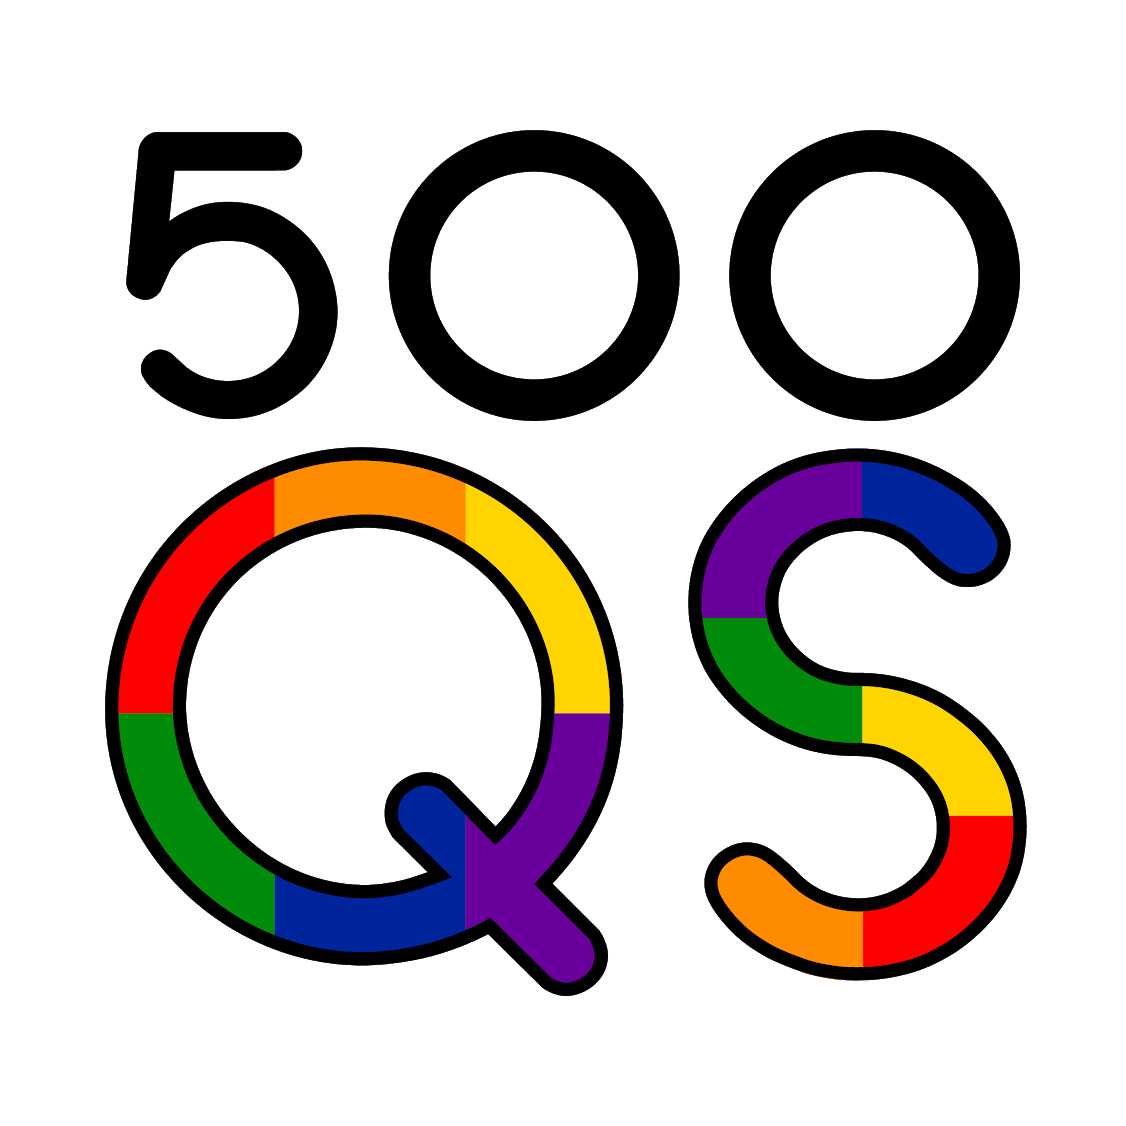 500 Queer Scientists Logo